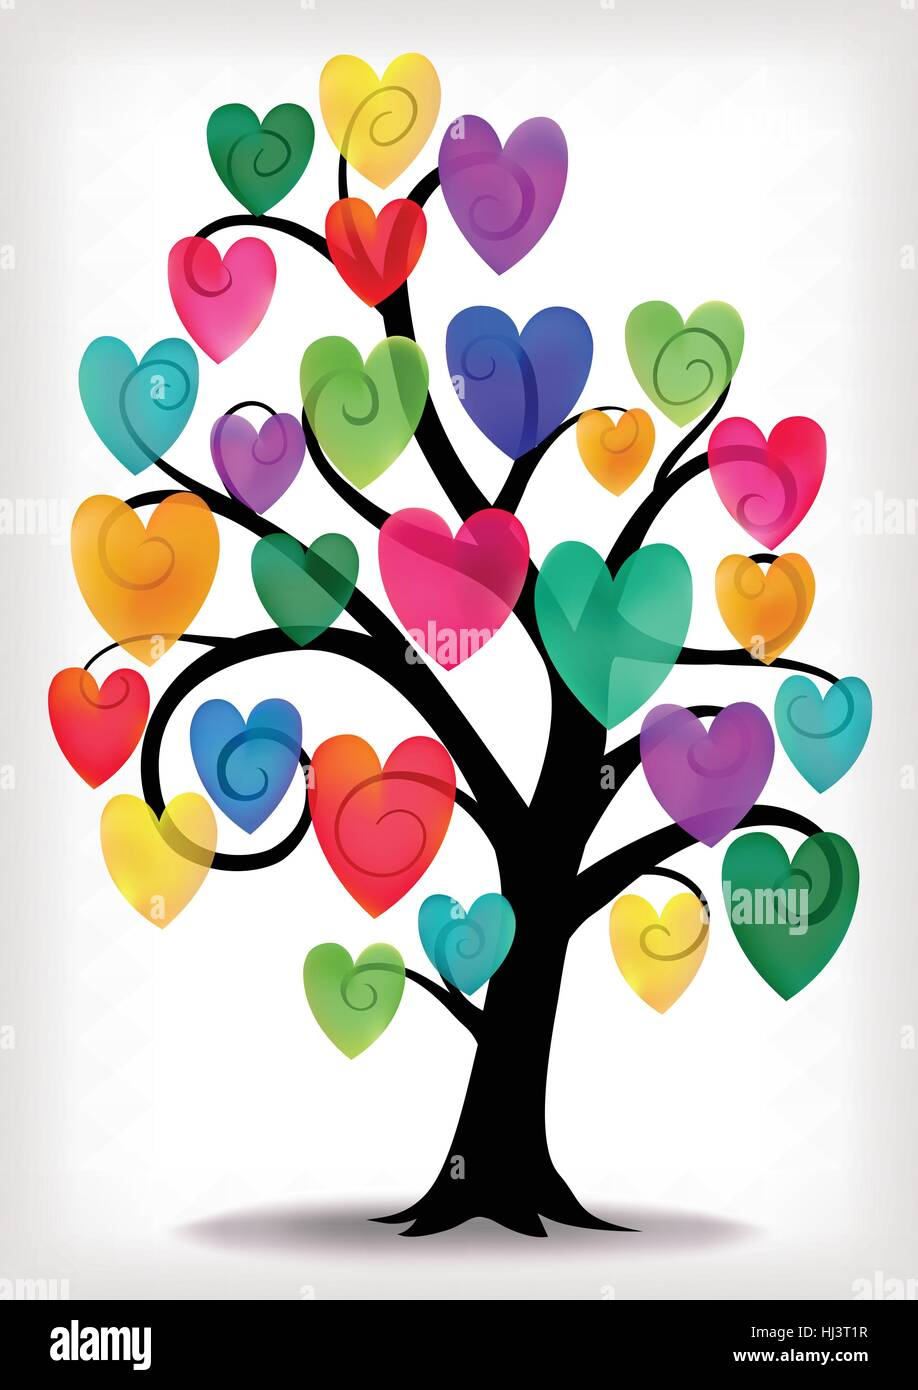 Swirly tree illustration with multi colored hearts. - Stock Vector